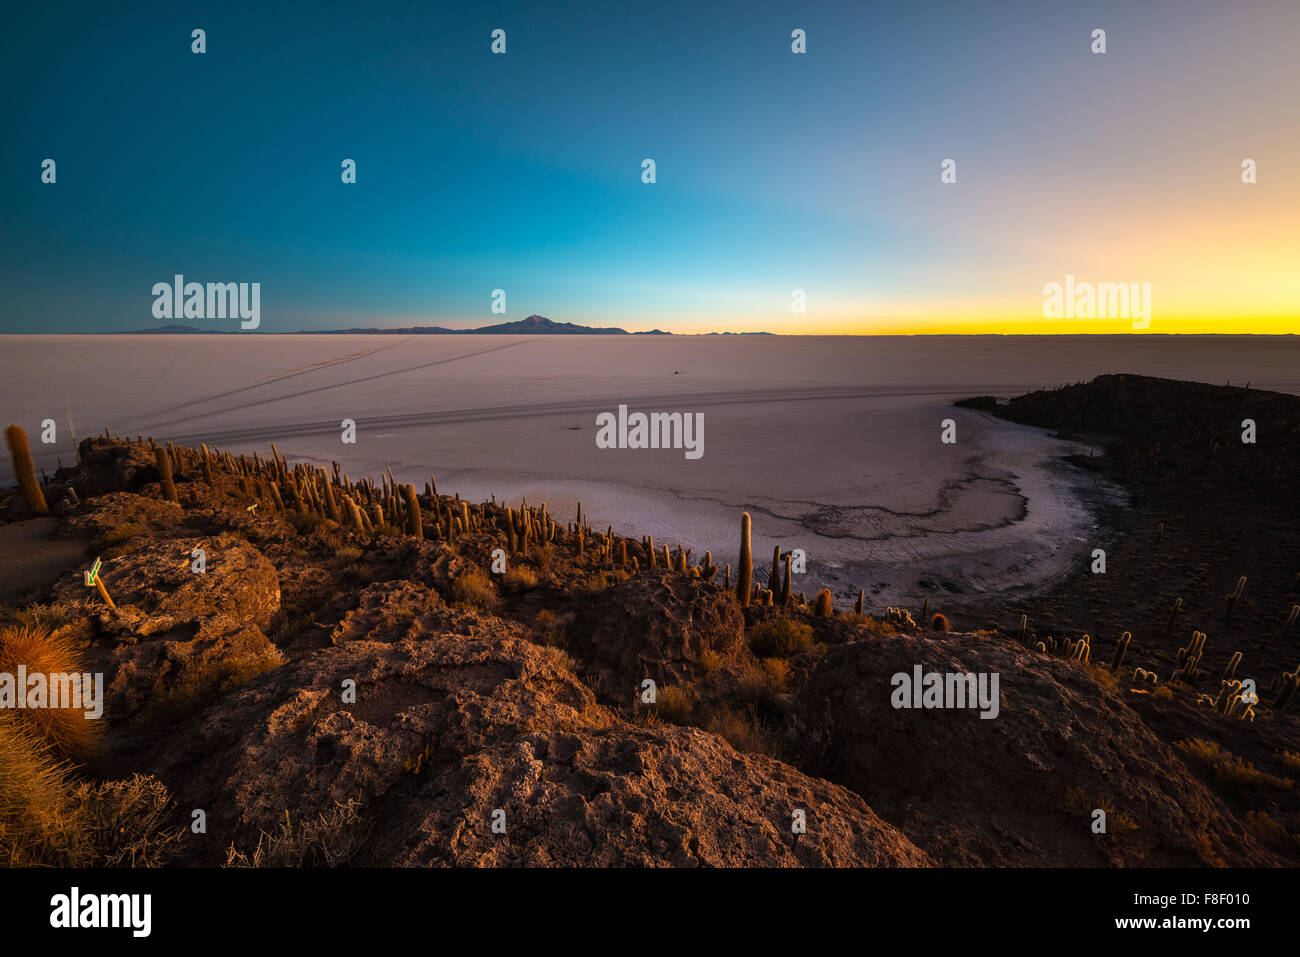 Uyuni Salt Flat viewed from the summit of the Incahuasi Island, among the most important travel destination in Bolivia. - Stock Image